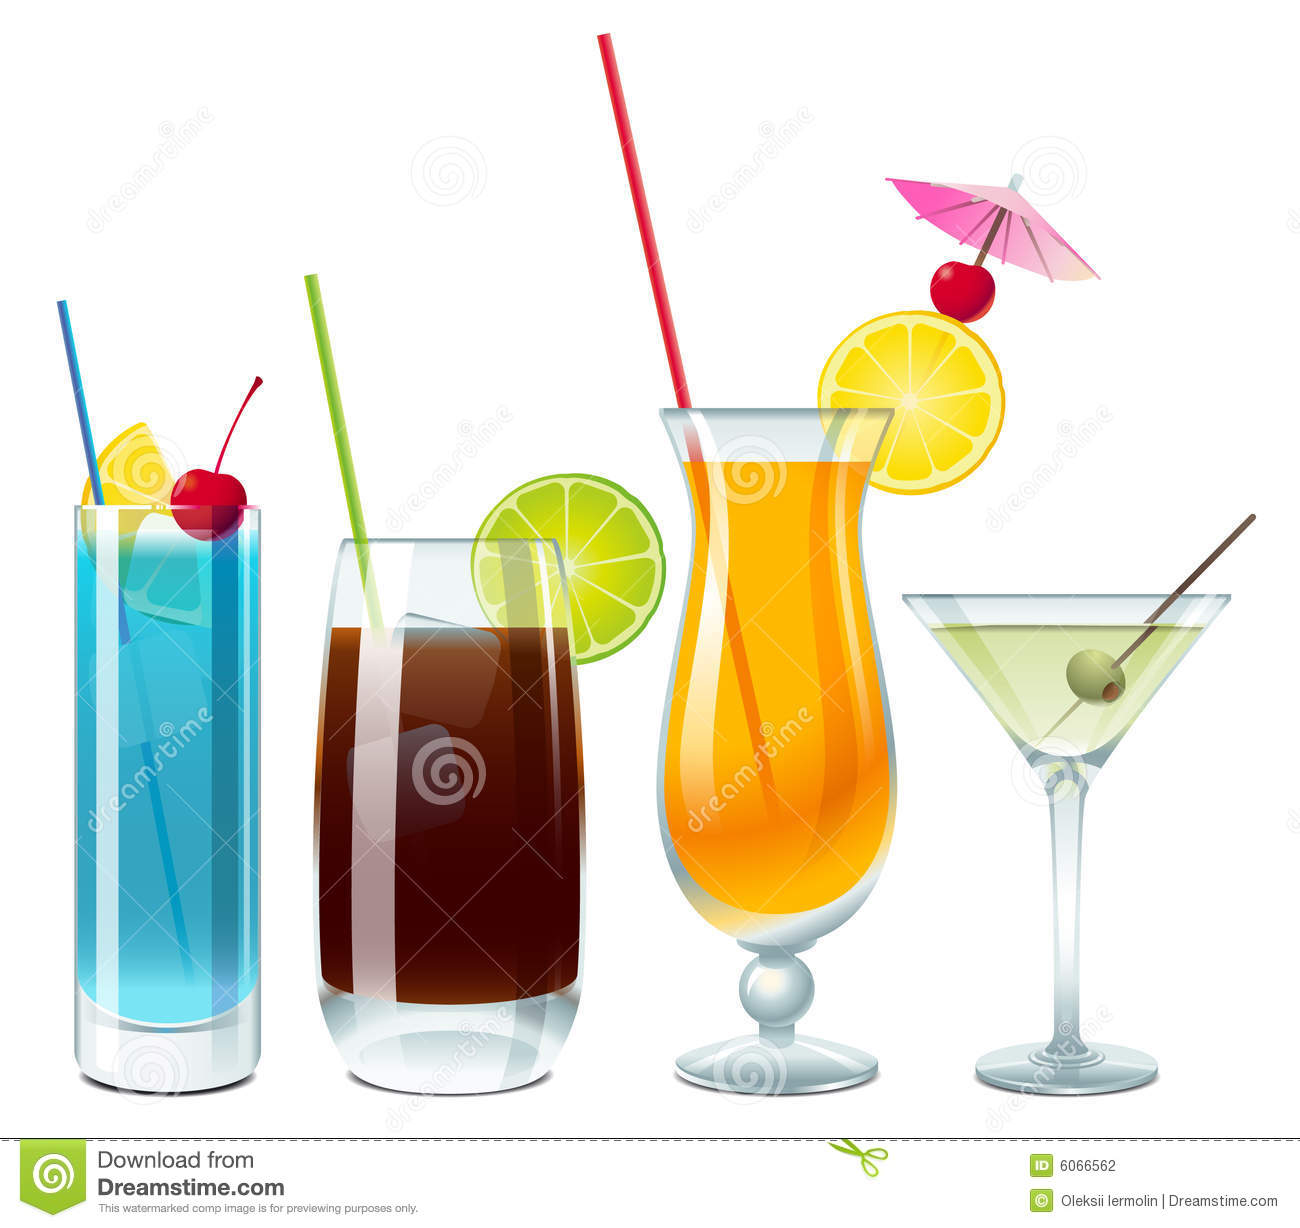 Beverage clipart cold drink Adult party Clipground drinks Clipart